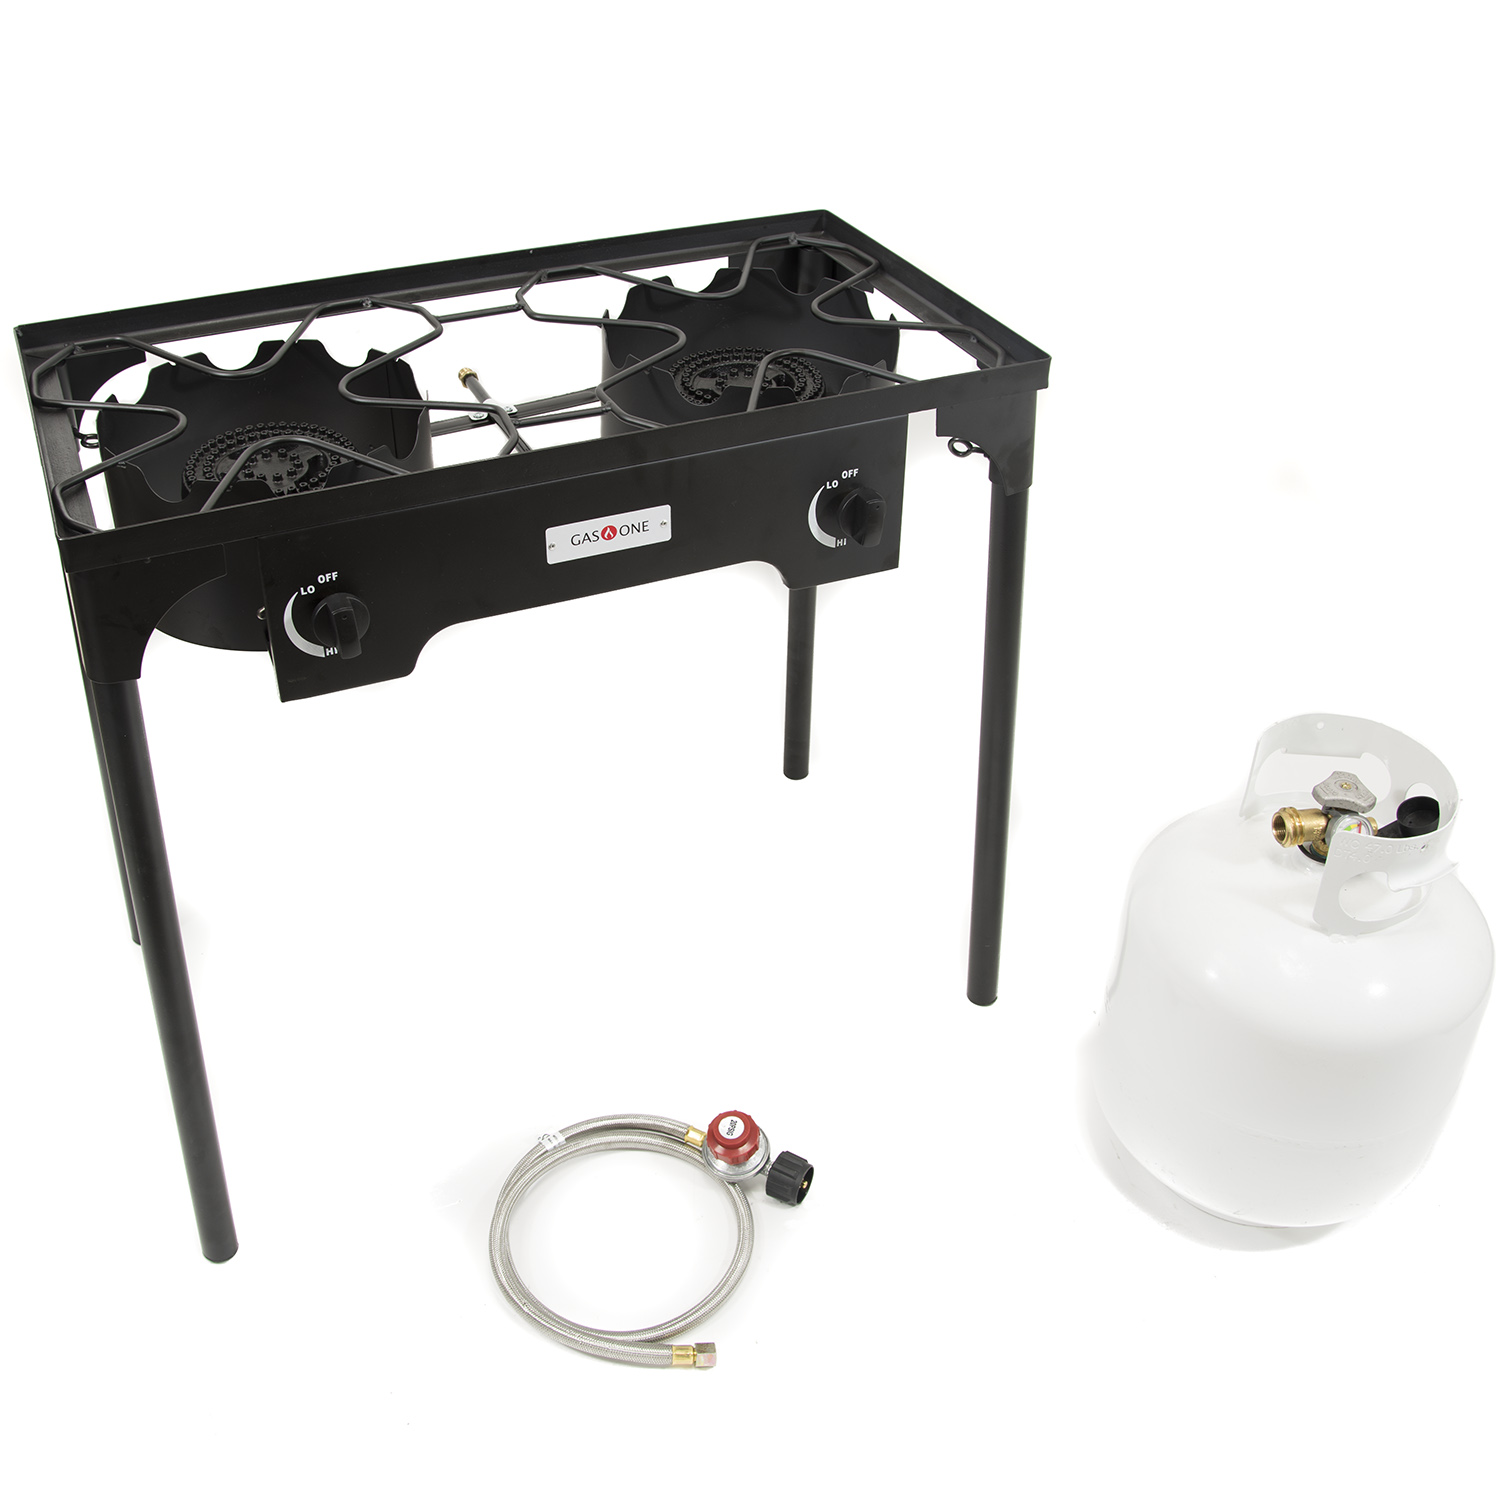 Gas One Double Burner Gas Propane Cooker Outdoor Camp Stove, BBQ Grill